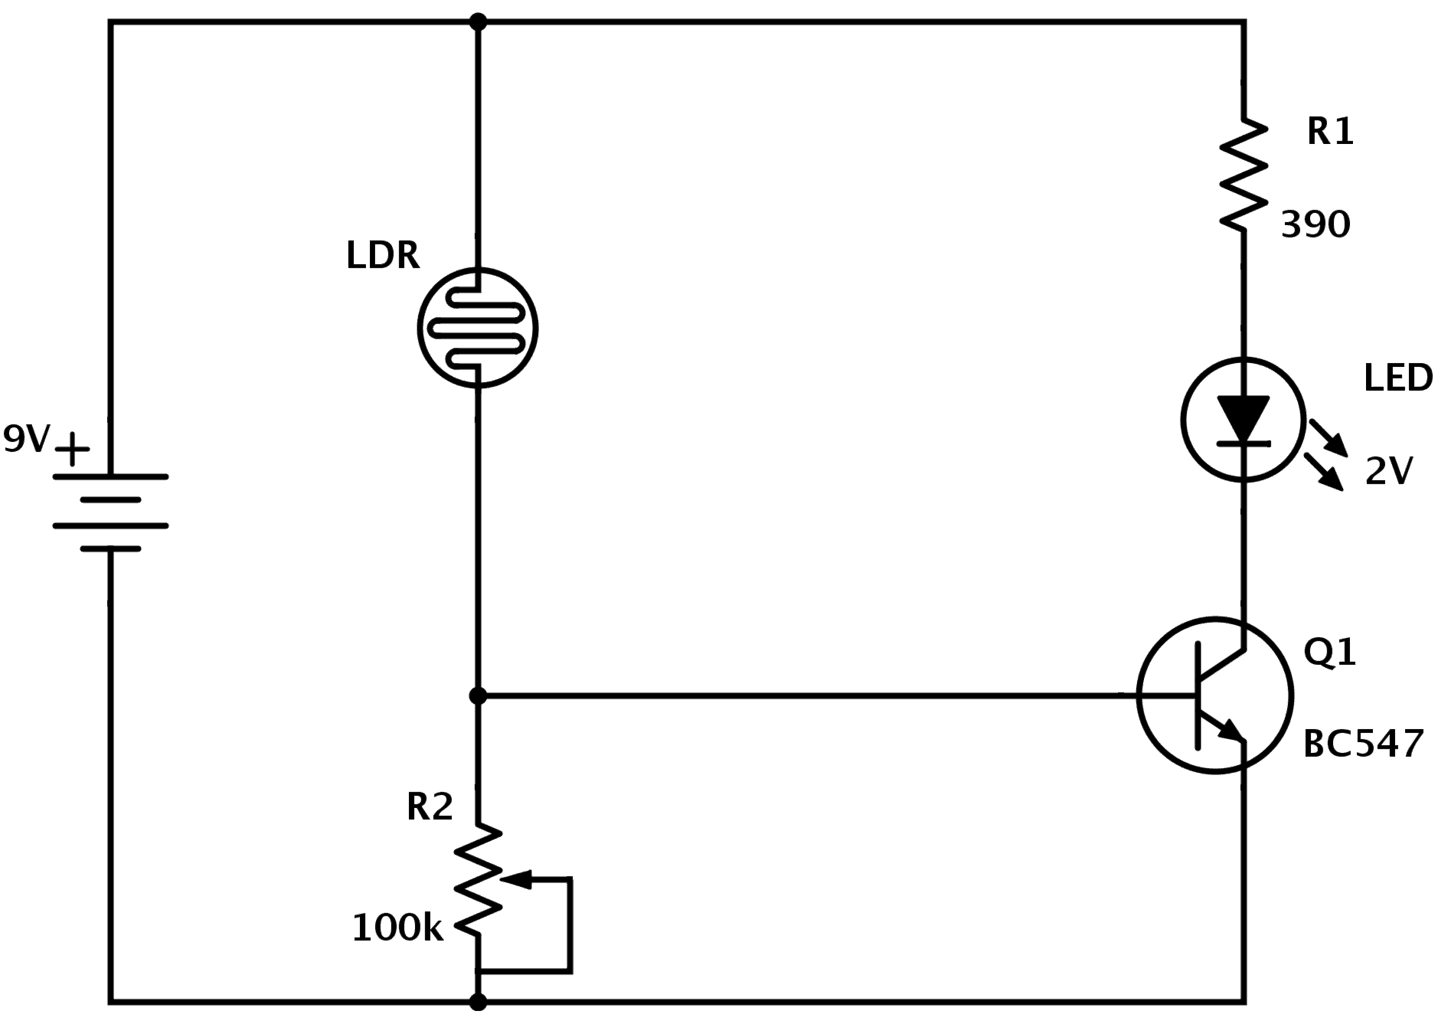 circuit diagram how to read and understand any schematic rh build electronic circuits com schematic diagram examples simple circuit diagram examples